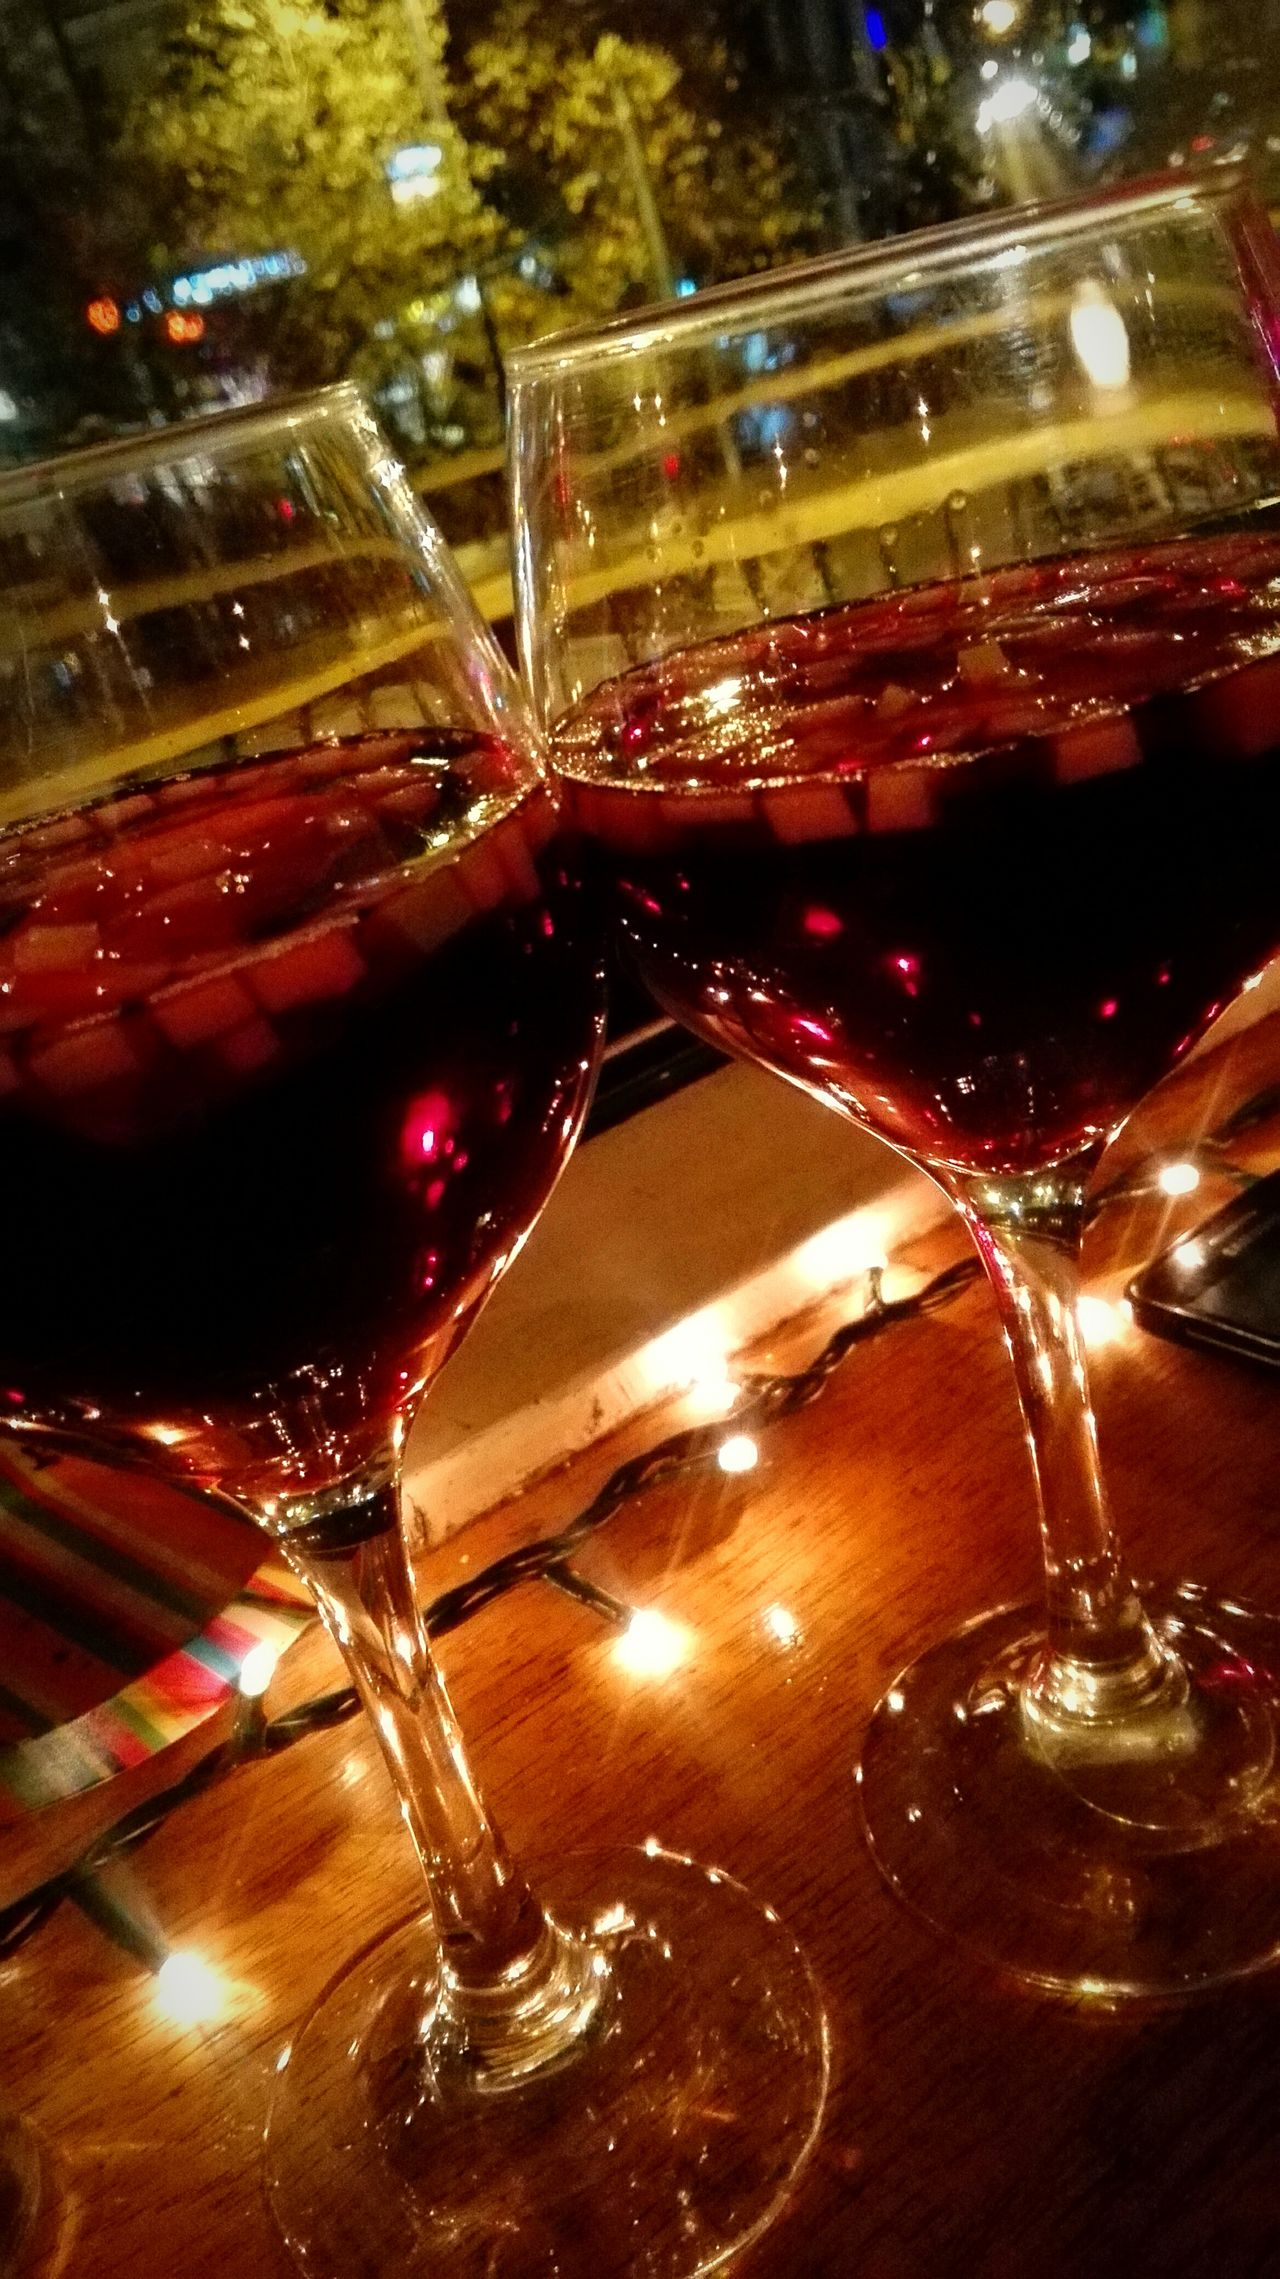 Red Night Wineglass Red Wine Love Beautiful ♥ Memories Athens City Athens Greece Athens Lovecity  Nice View Nightout Night Lights Nightcall Night Photography Night Life Pagkrati Outdoors No People Class Light And Shadow Lightpainting Light Up Your Life Light In The Darkness